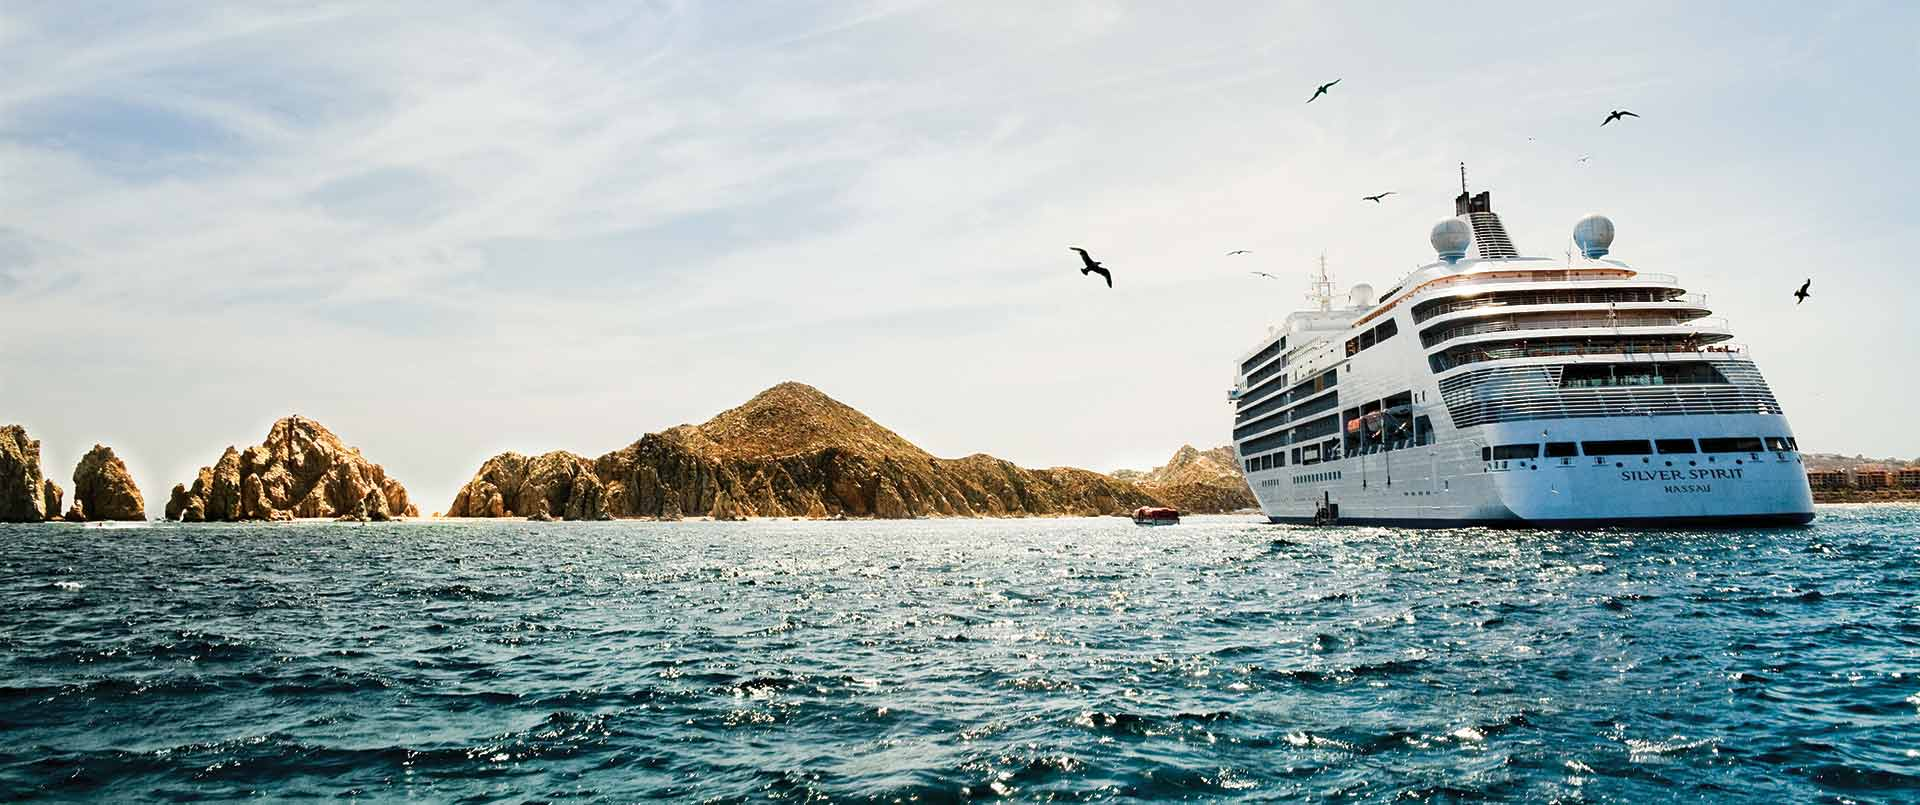 Opera Voyages with Silverseas Europe